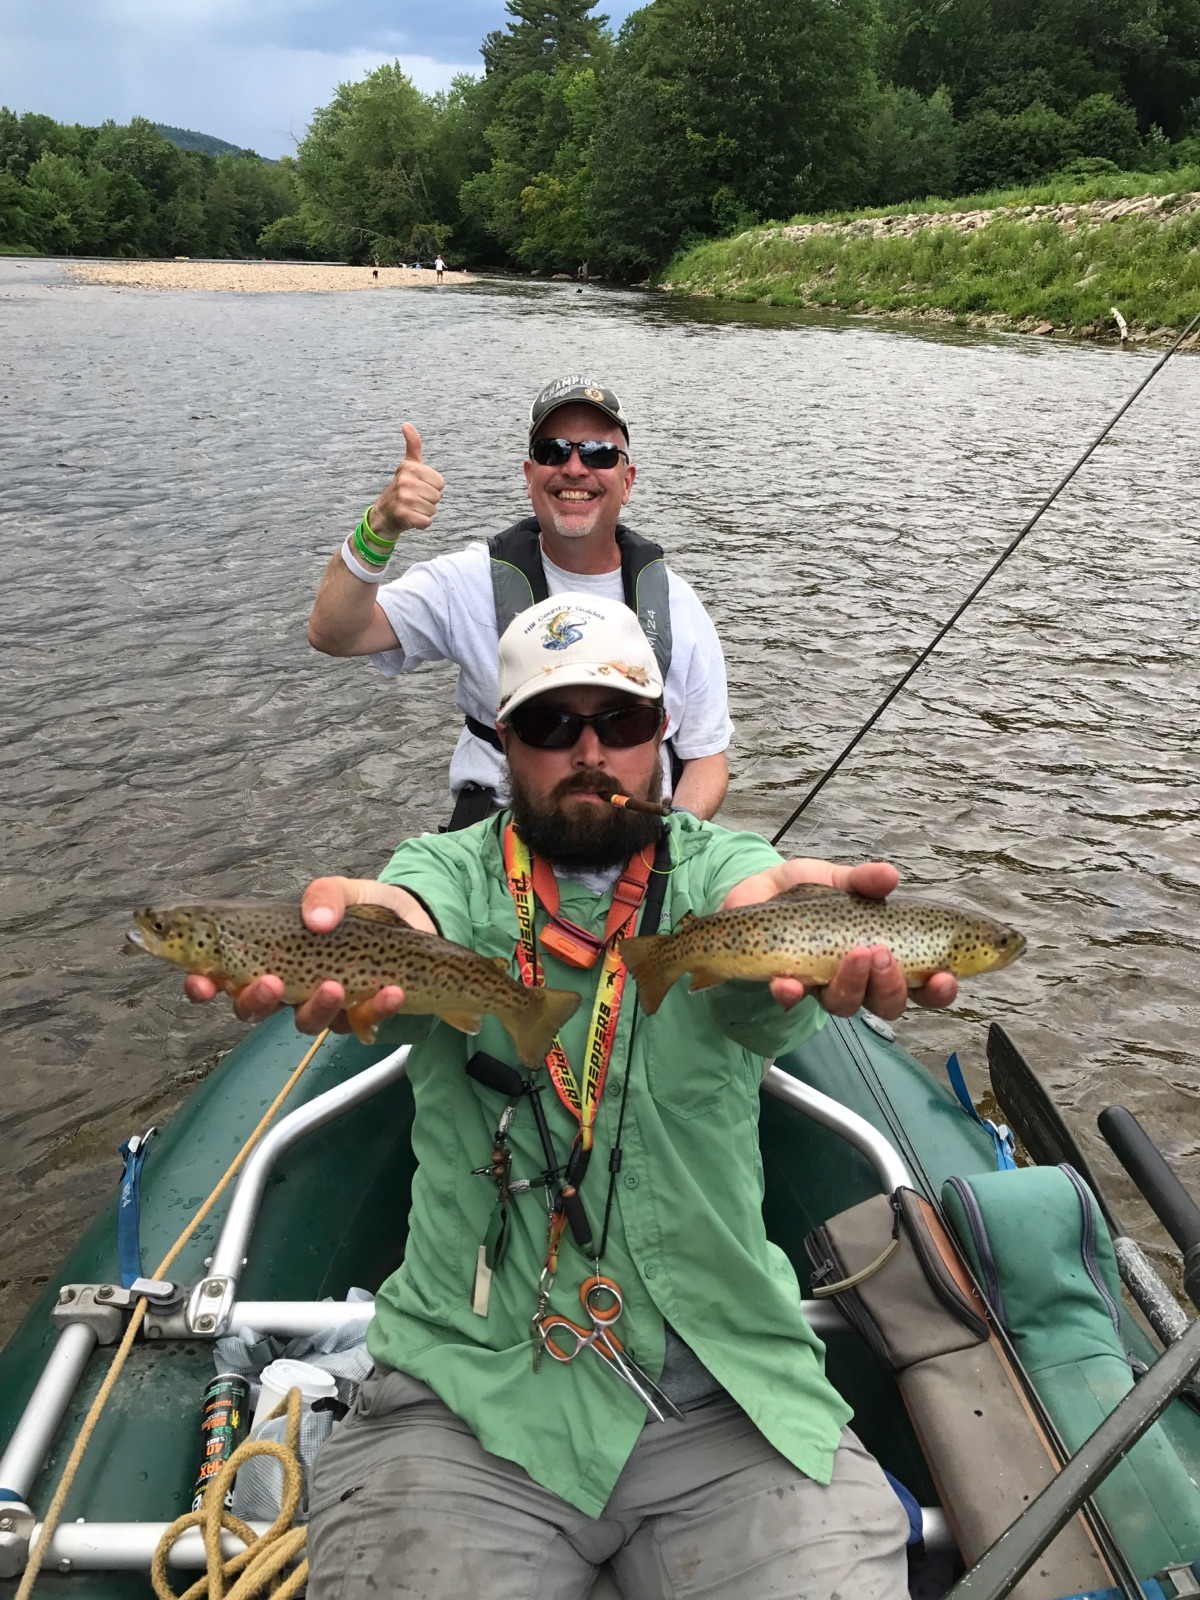 One of many doubles we saw over the past few weeks. Fish ate gray drake emergers.